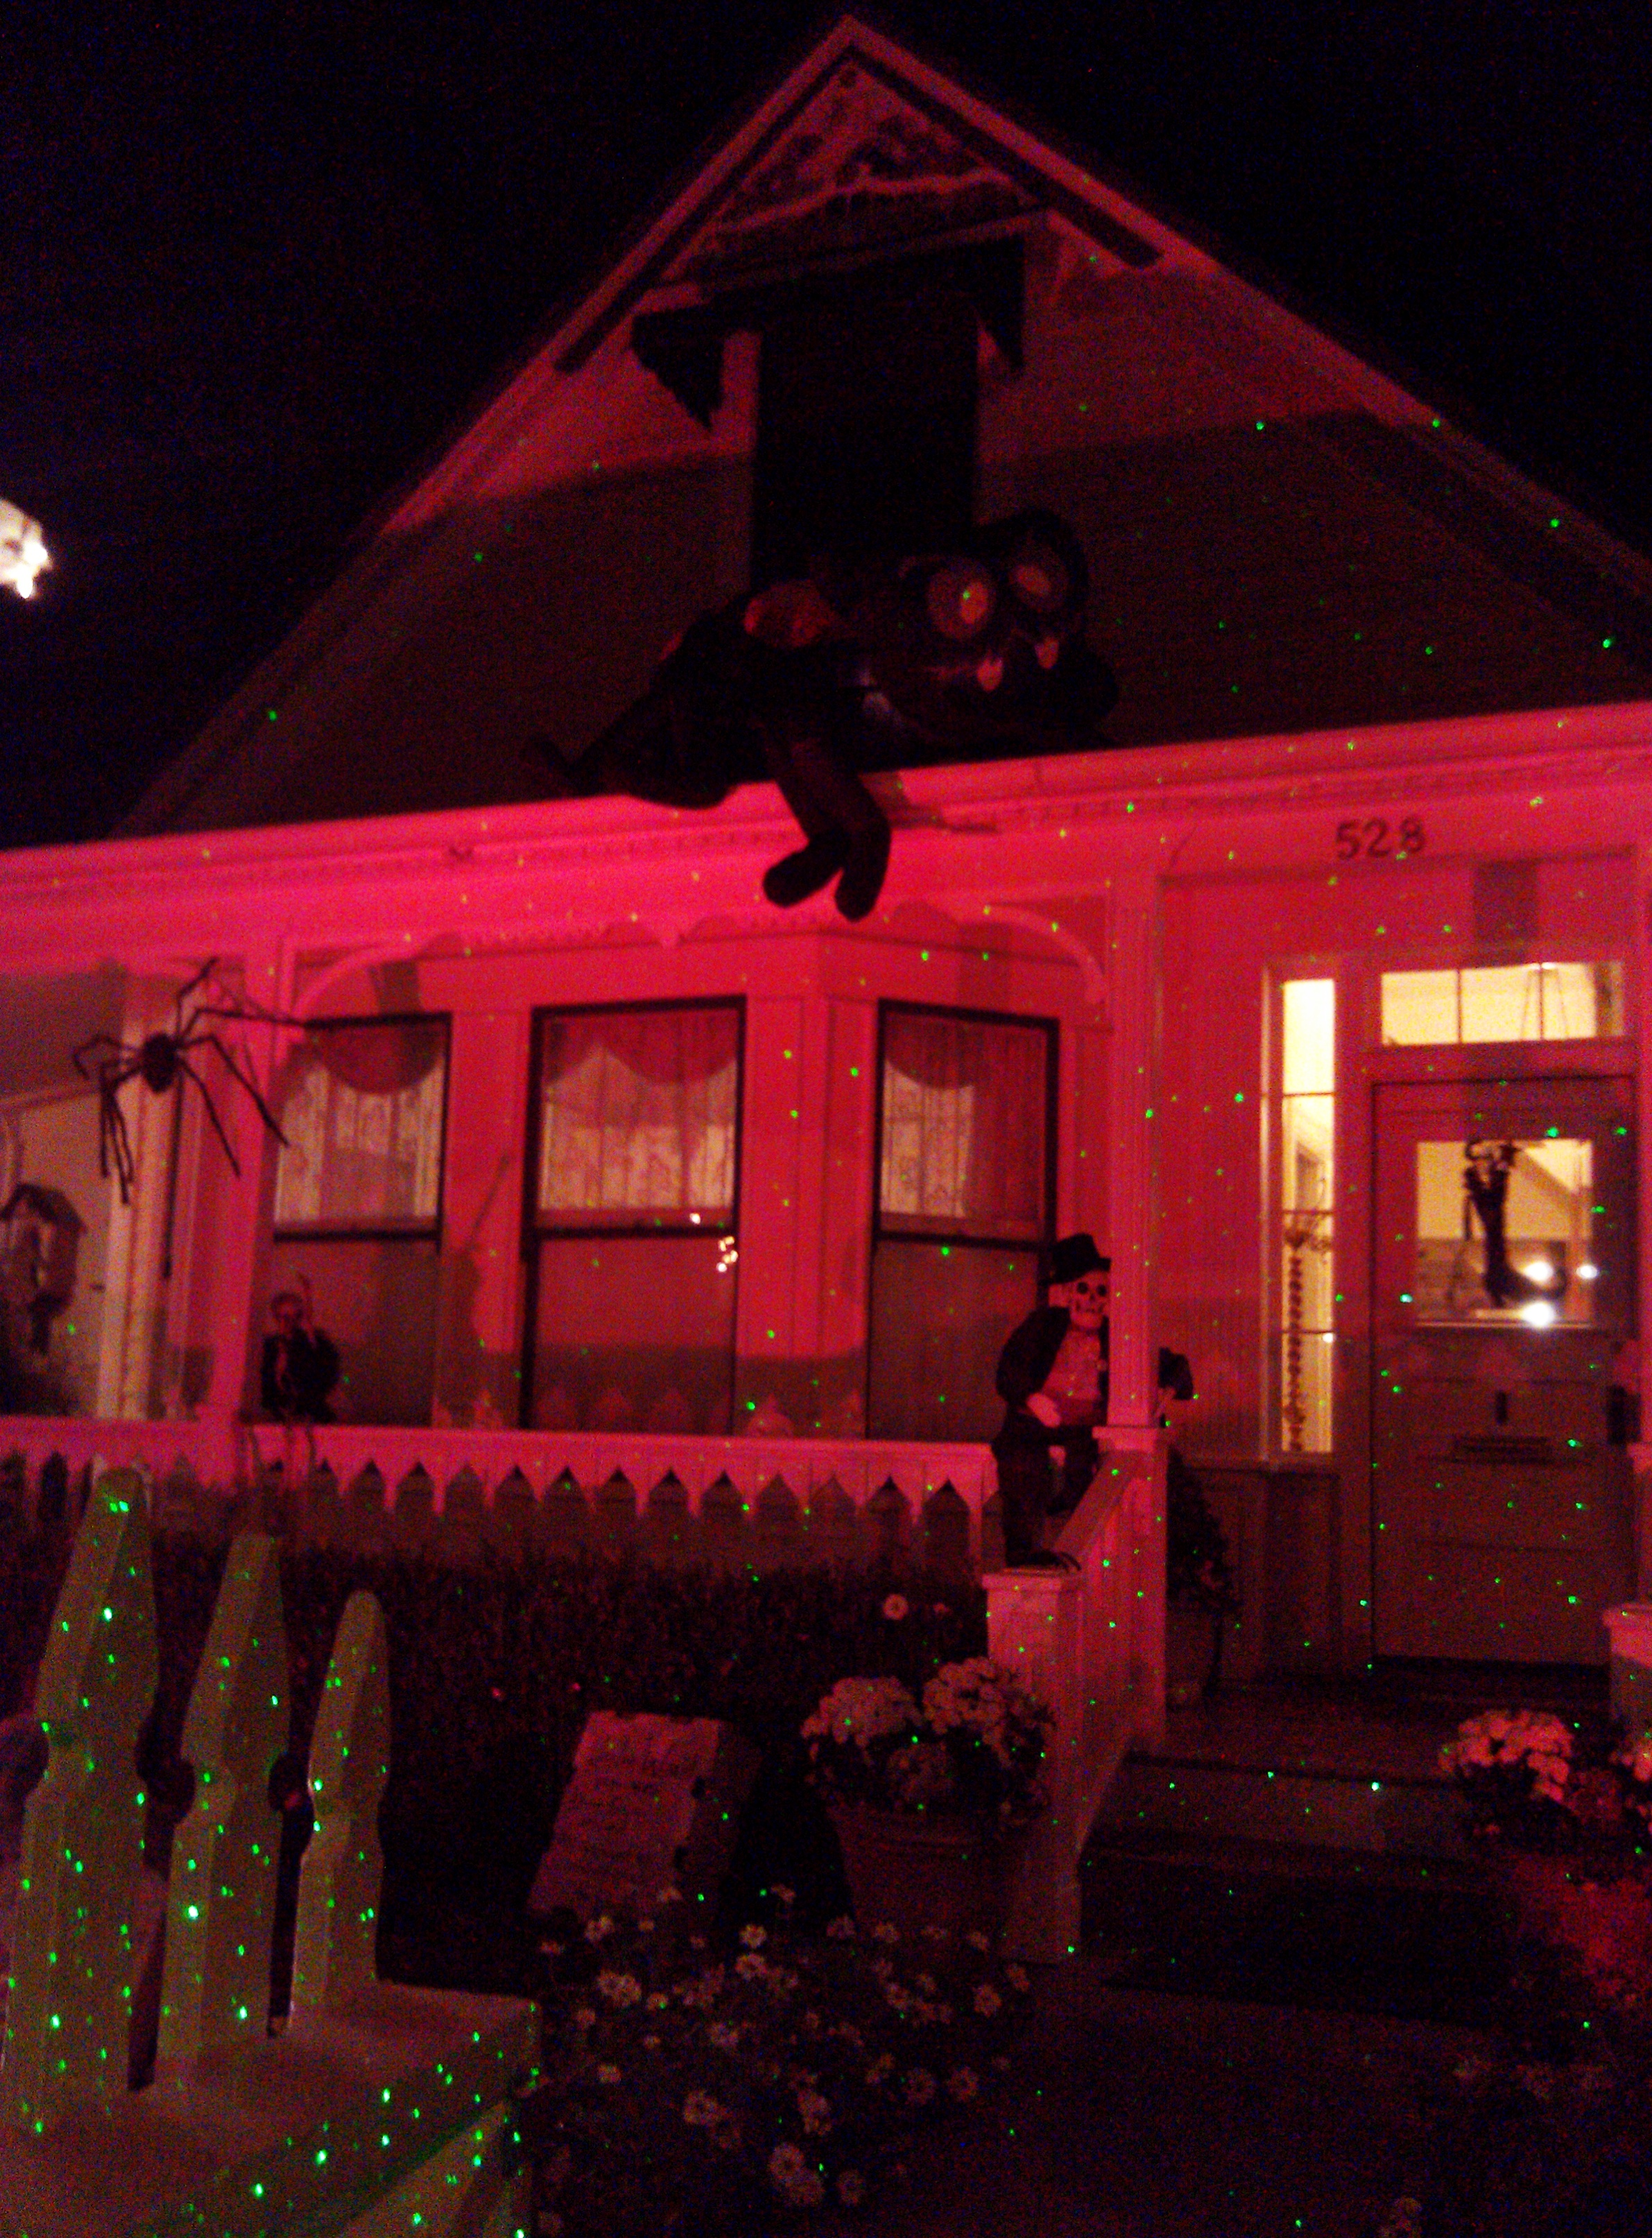 Laser starfields for halloween yard displays in nevada city 0 comments aloadofball Choice Image